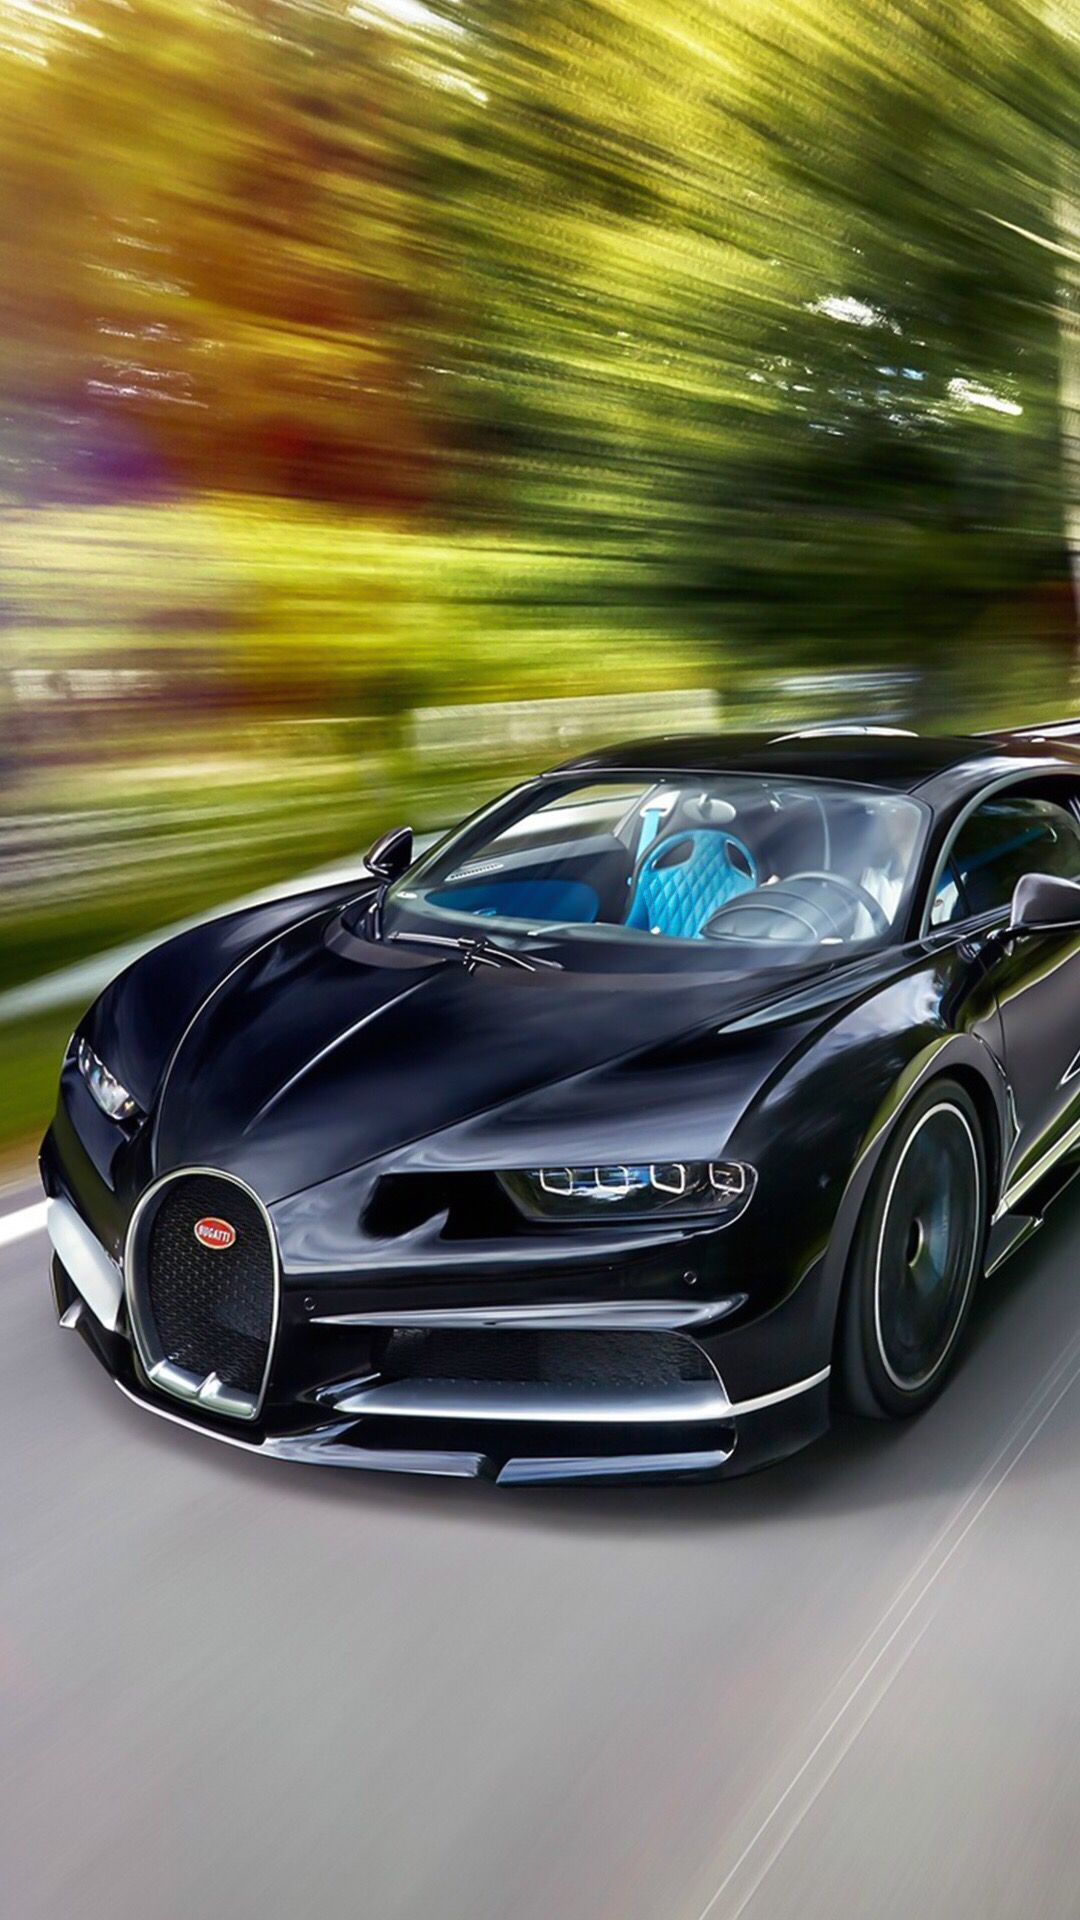 Bugatti Luxury Car The Cool Cars Here Are The Ones That Took Pride Of Location As Posters On Bed Room Wal Sports Car Brands Fast Sports Cars Cool Sports Cars